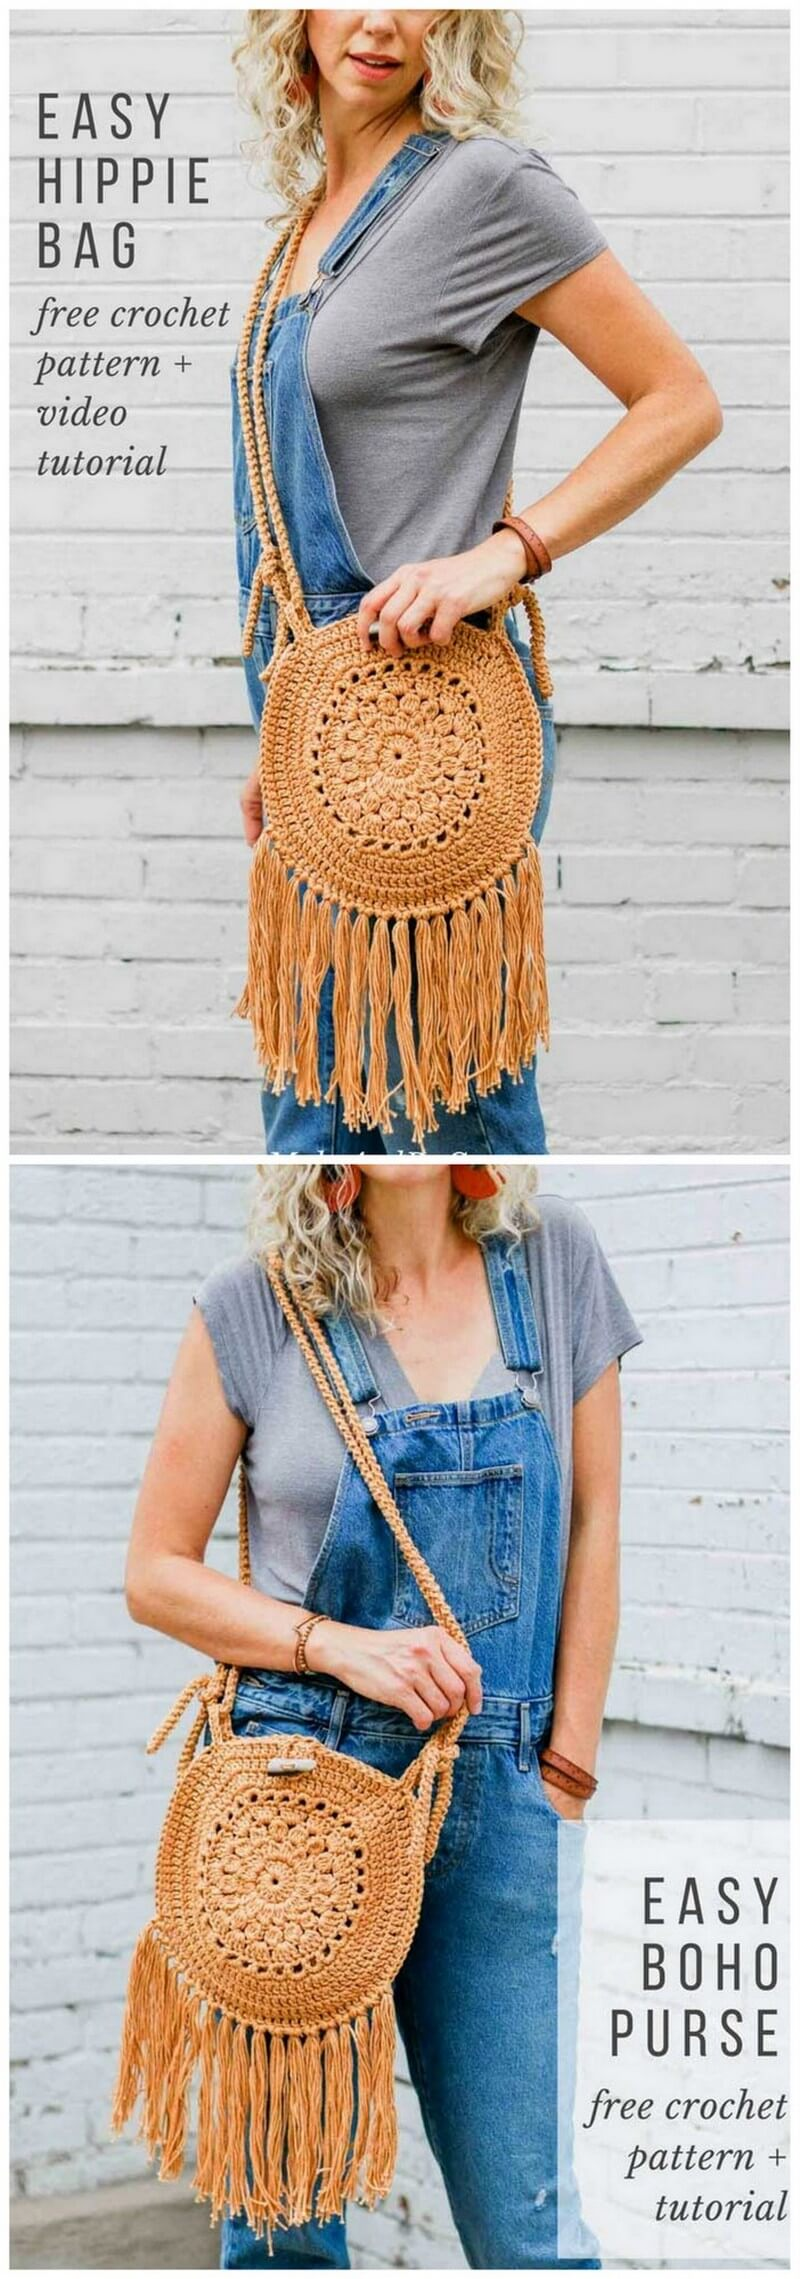 Crochet Bag Pattern (24)